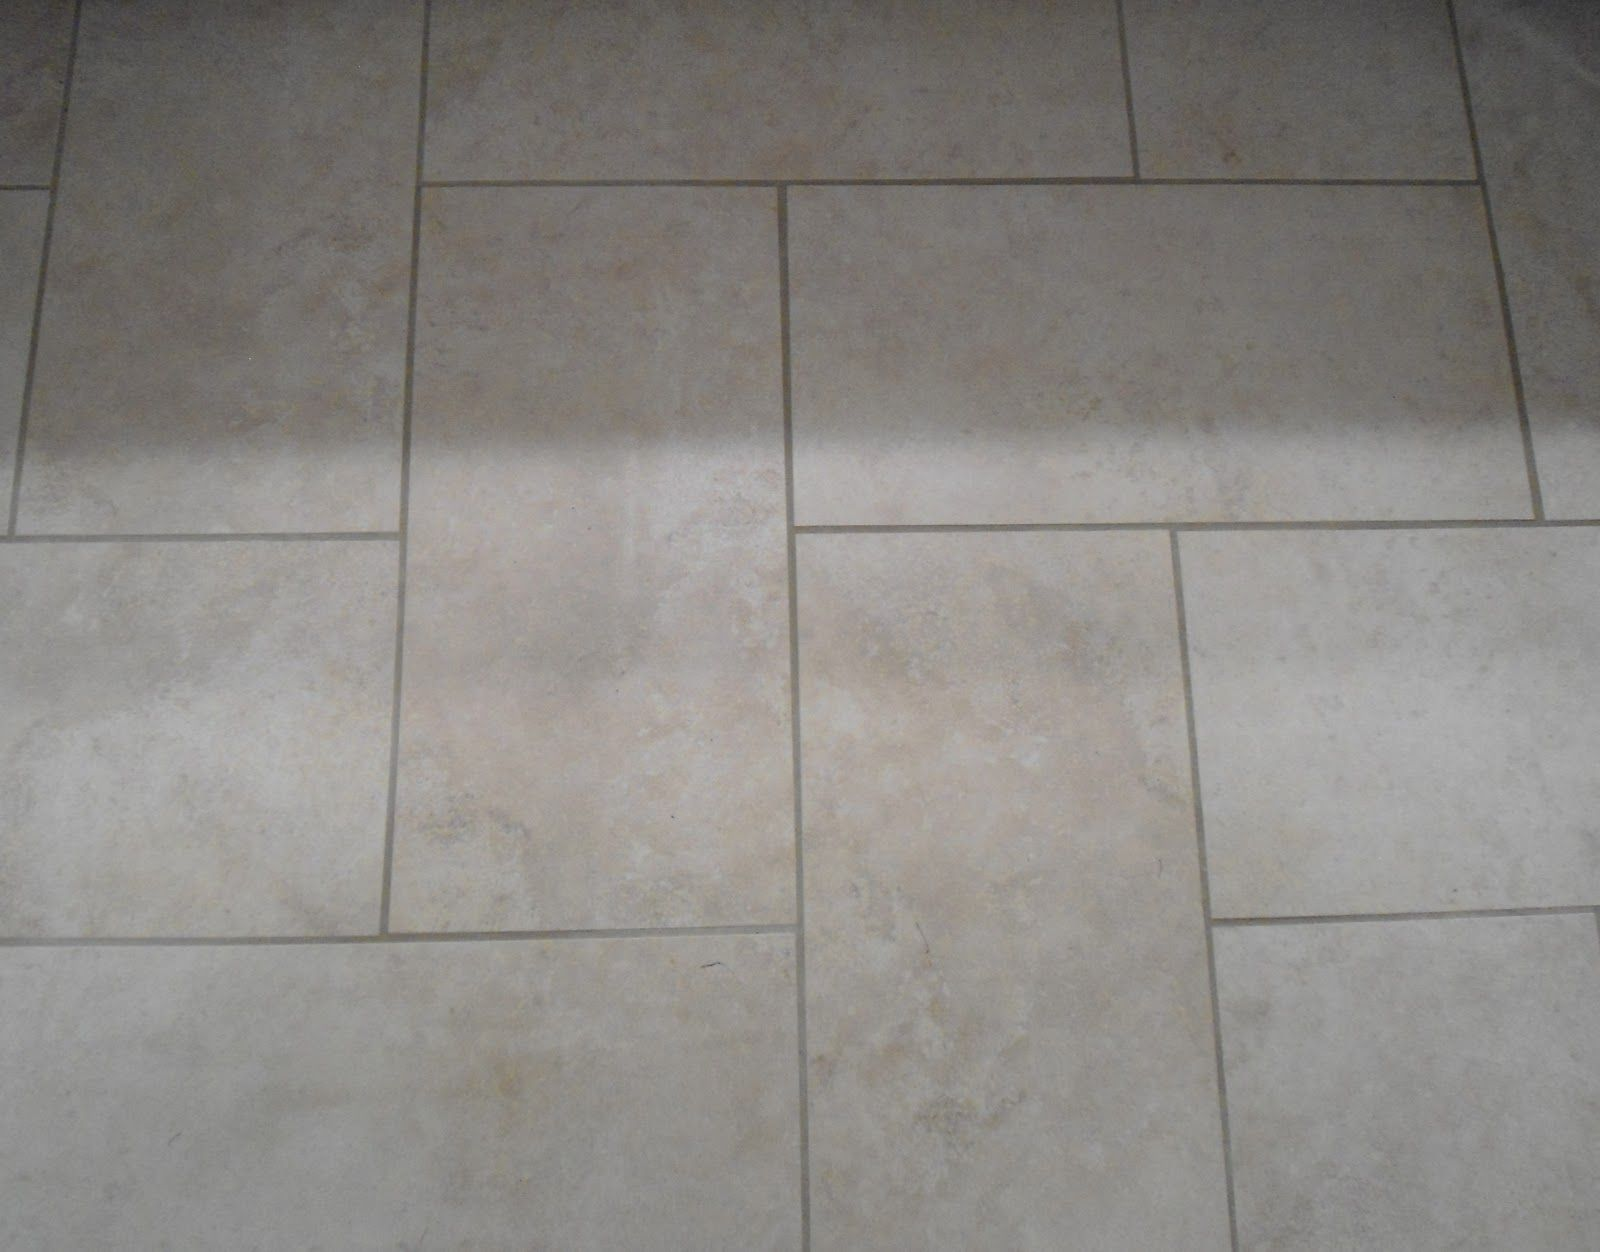 Kitchen Floor Stone Tiles 25 Best Ideas About 12x24 Tile On Pinterest Porcelain Tile